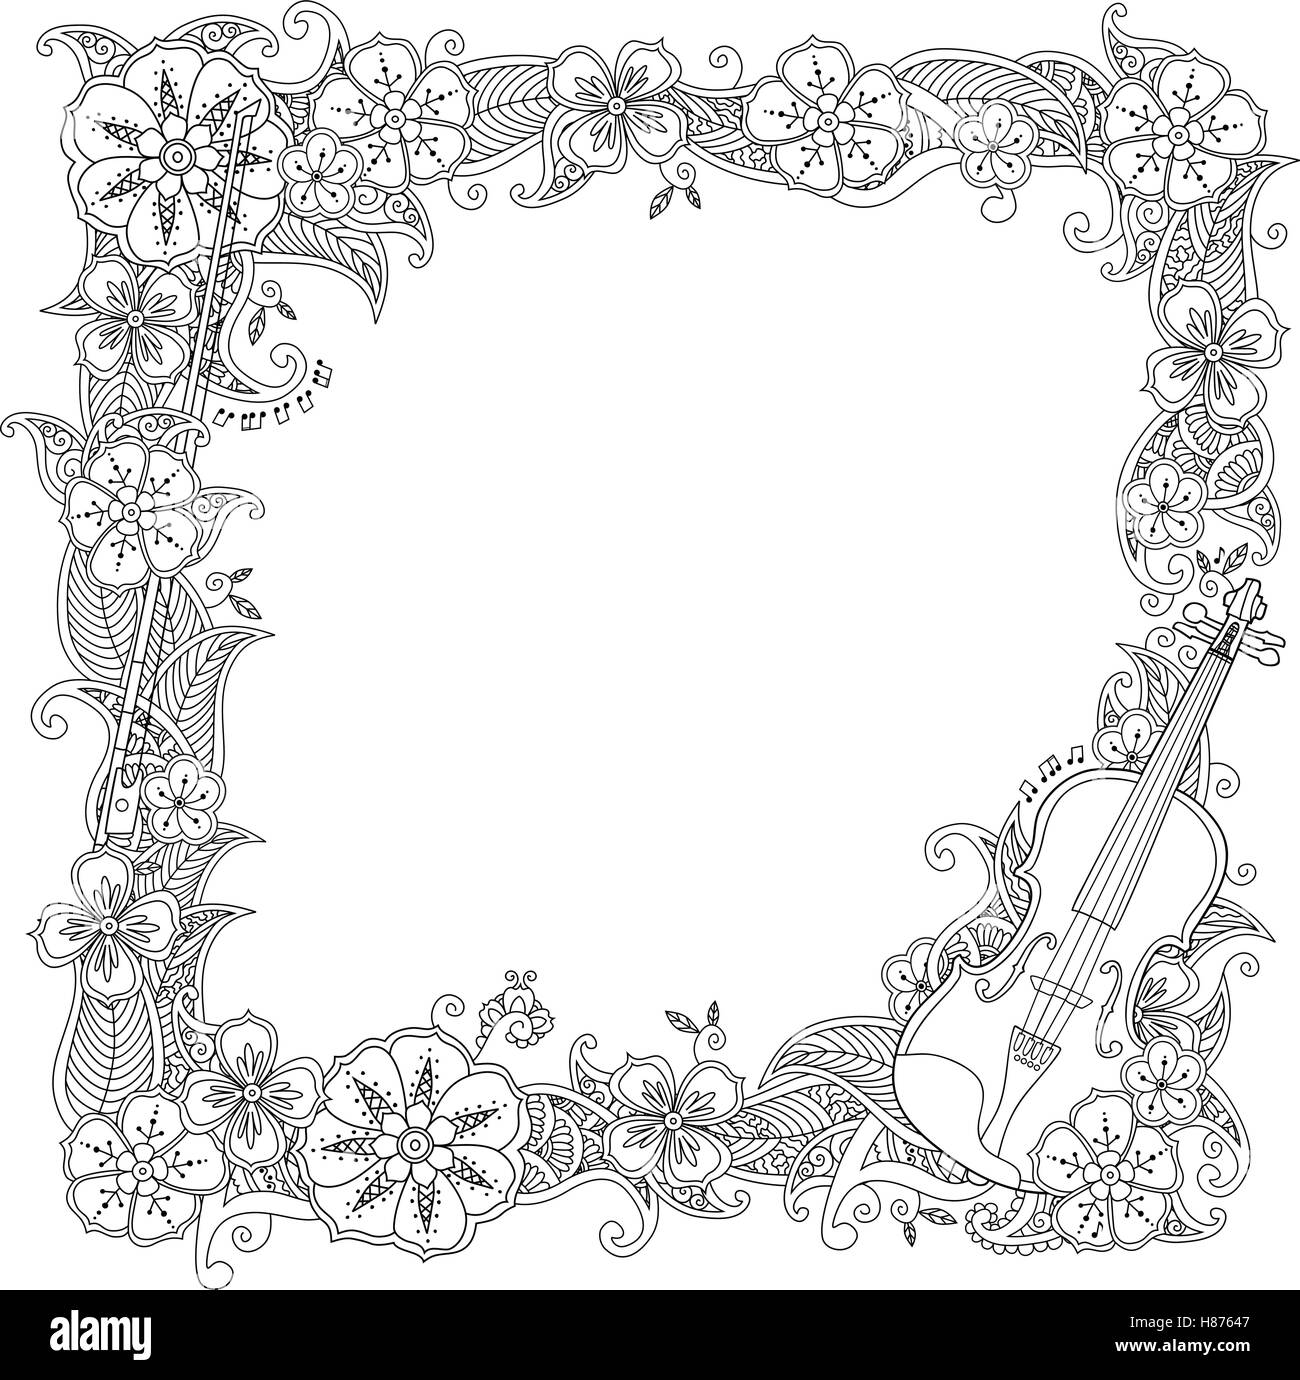 coloring page border square frame with violin isolated on white